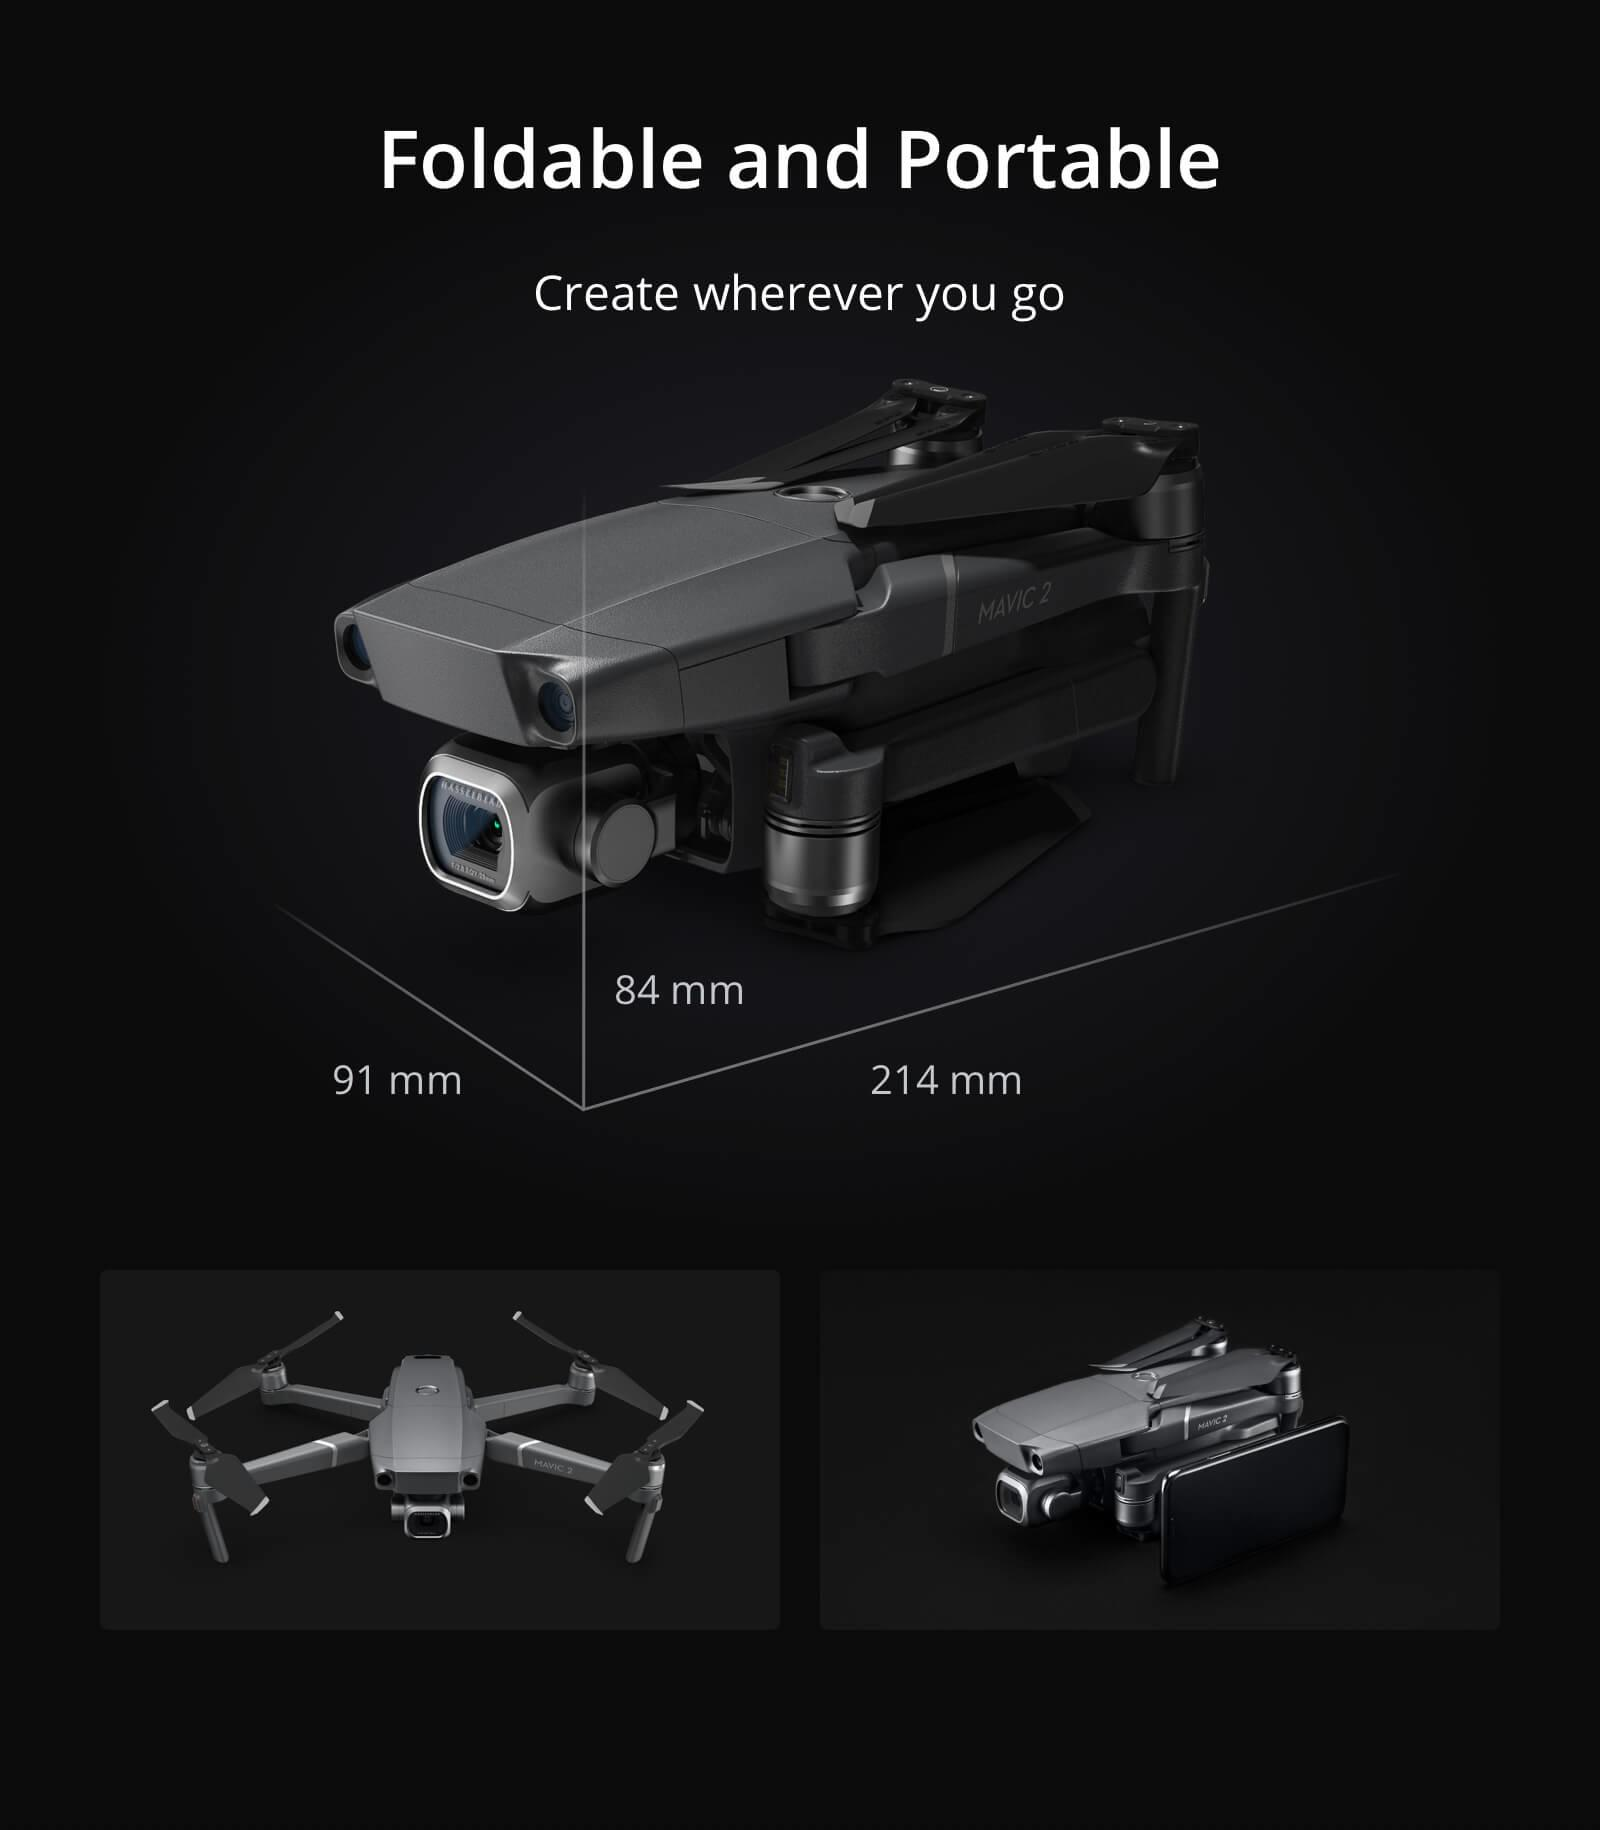 Mavic 2 is foldable and portable